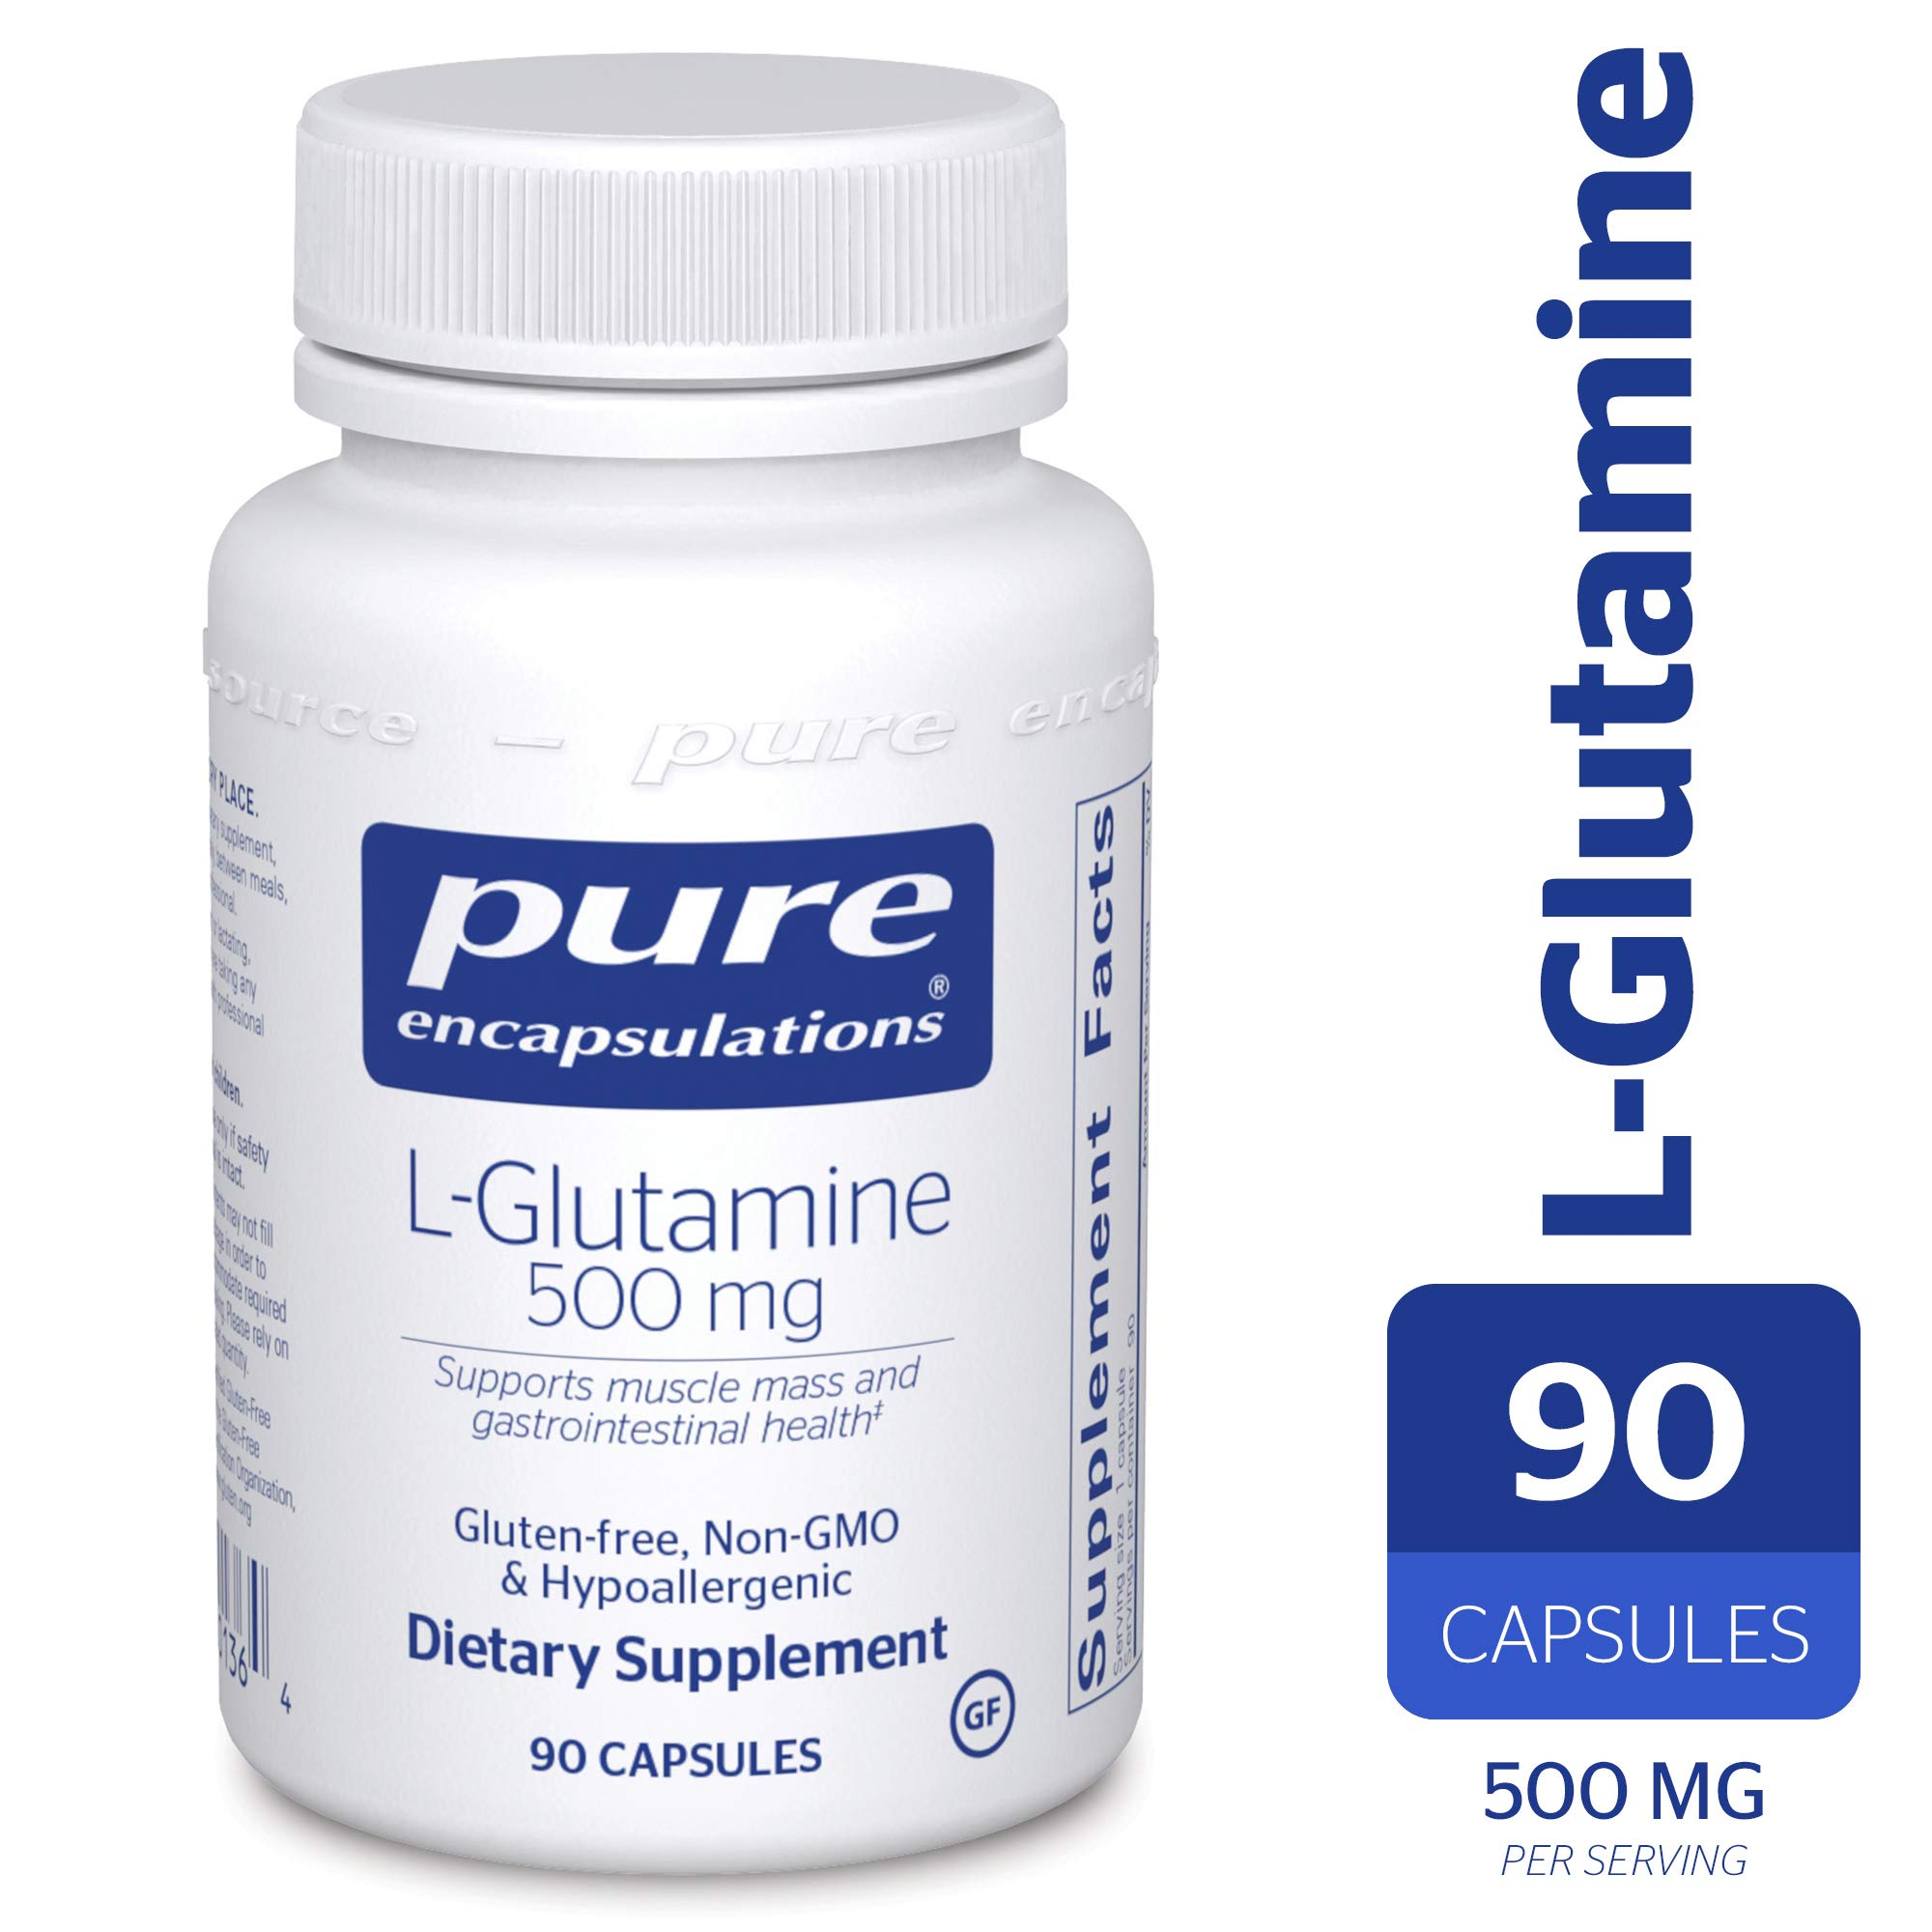 Pure Encapsulations - l-Glutamine 500 mg - Hypoallergenic Supplement Supports Muscle Mass and Gastrointestinal Tract* - 90 Capsules